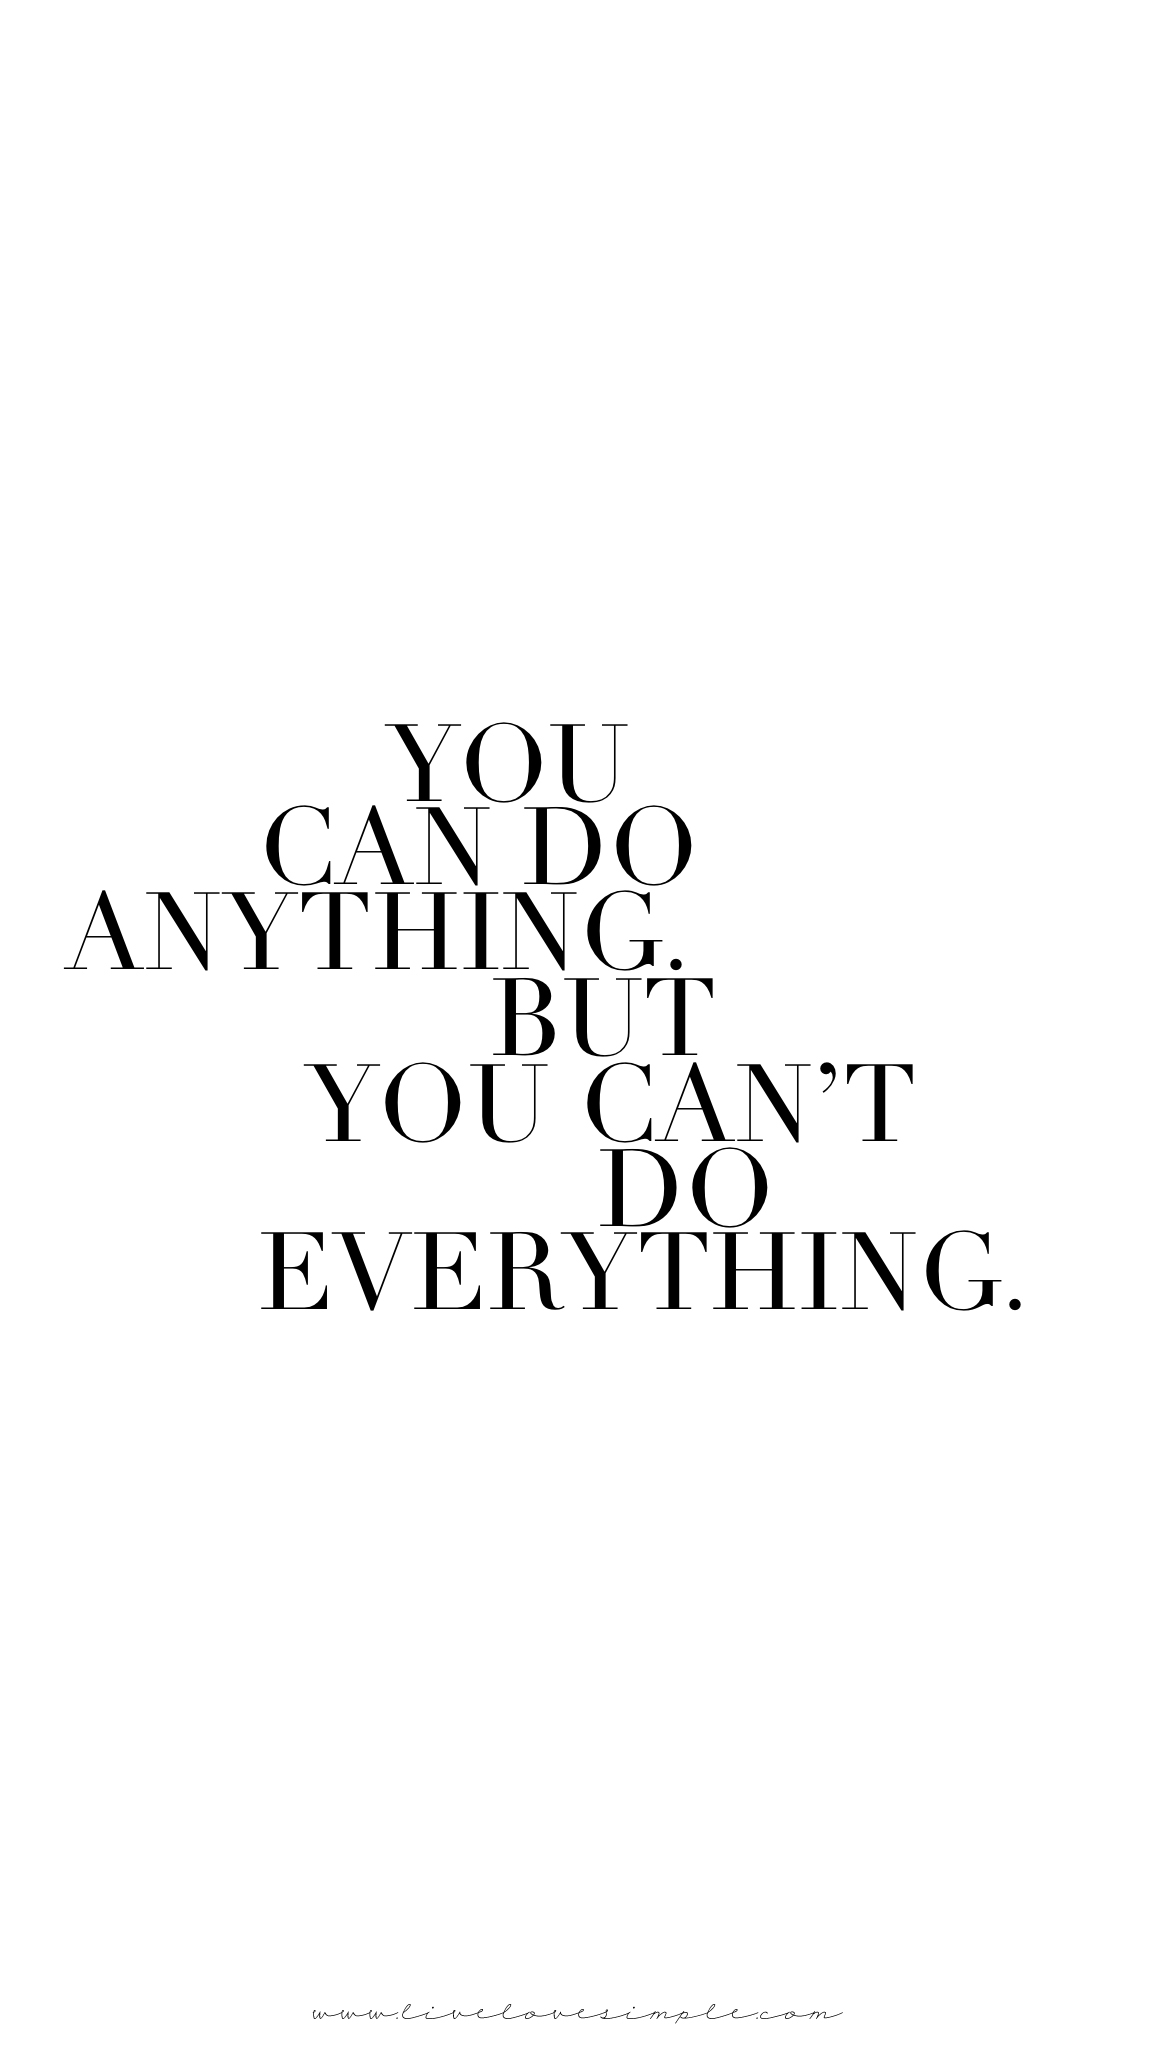 You can do anything. But you can't do everything.